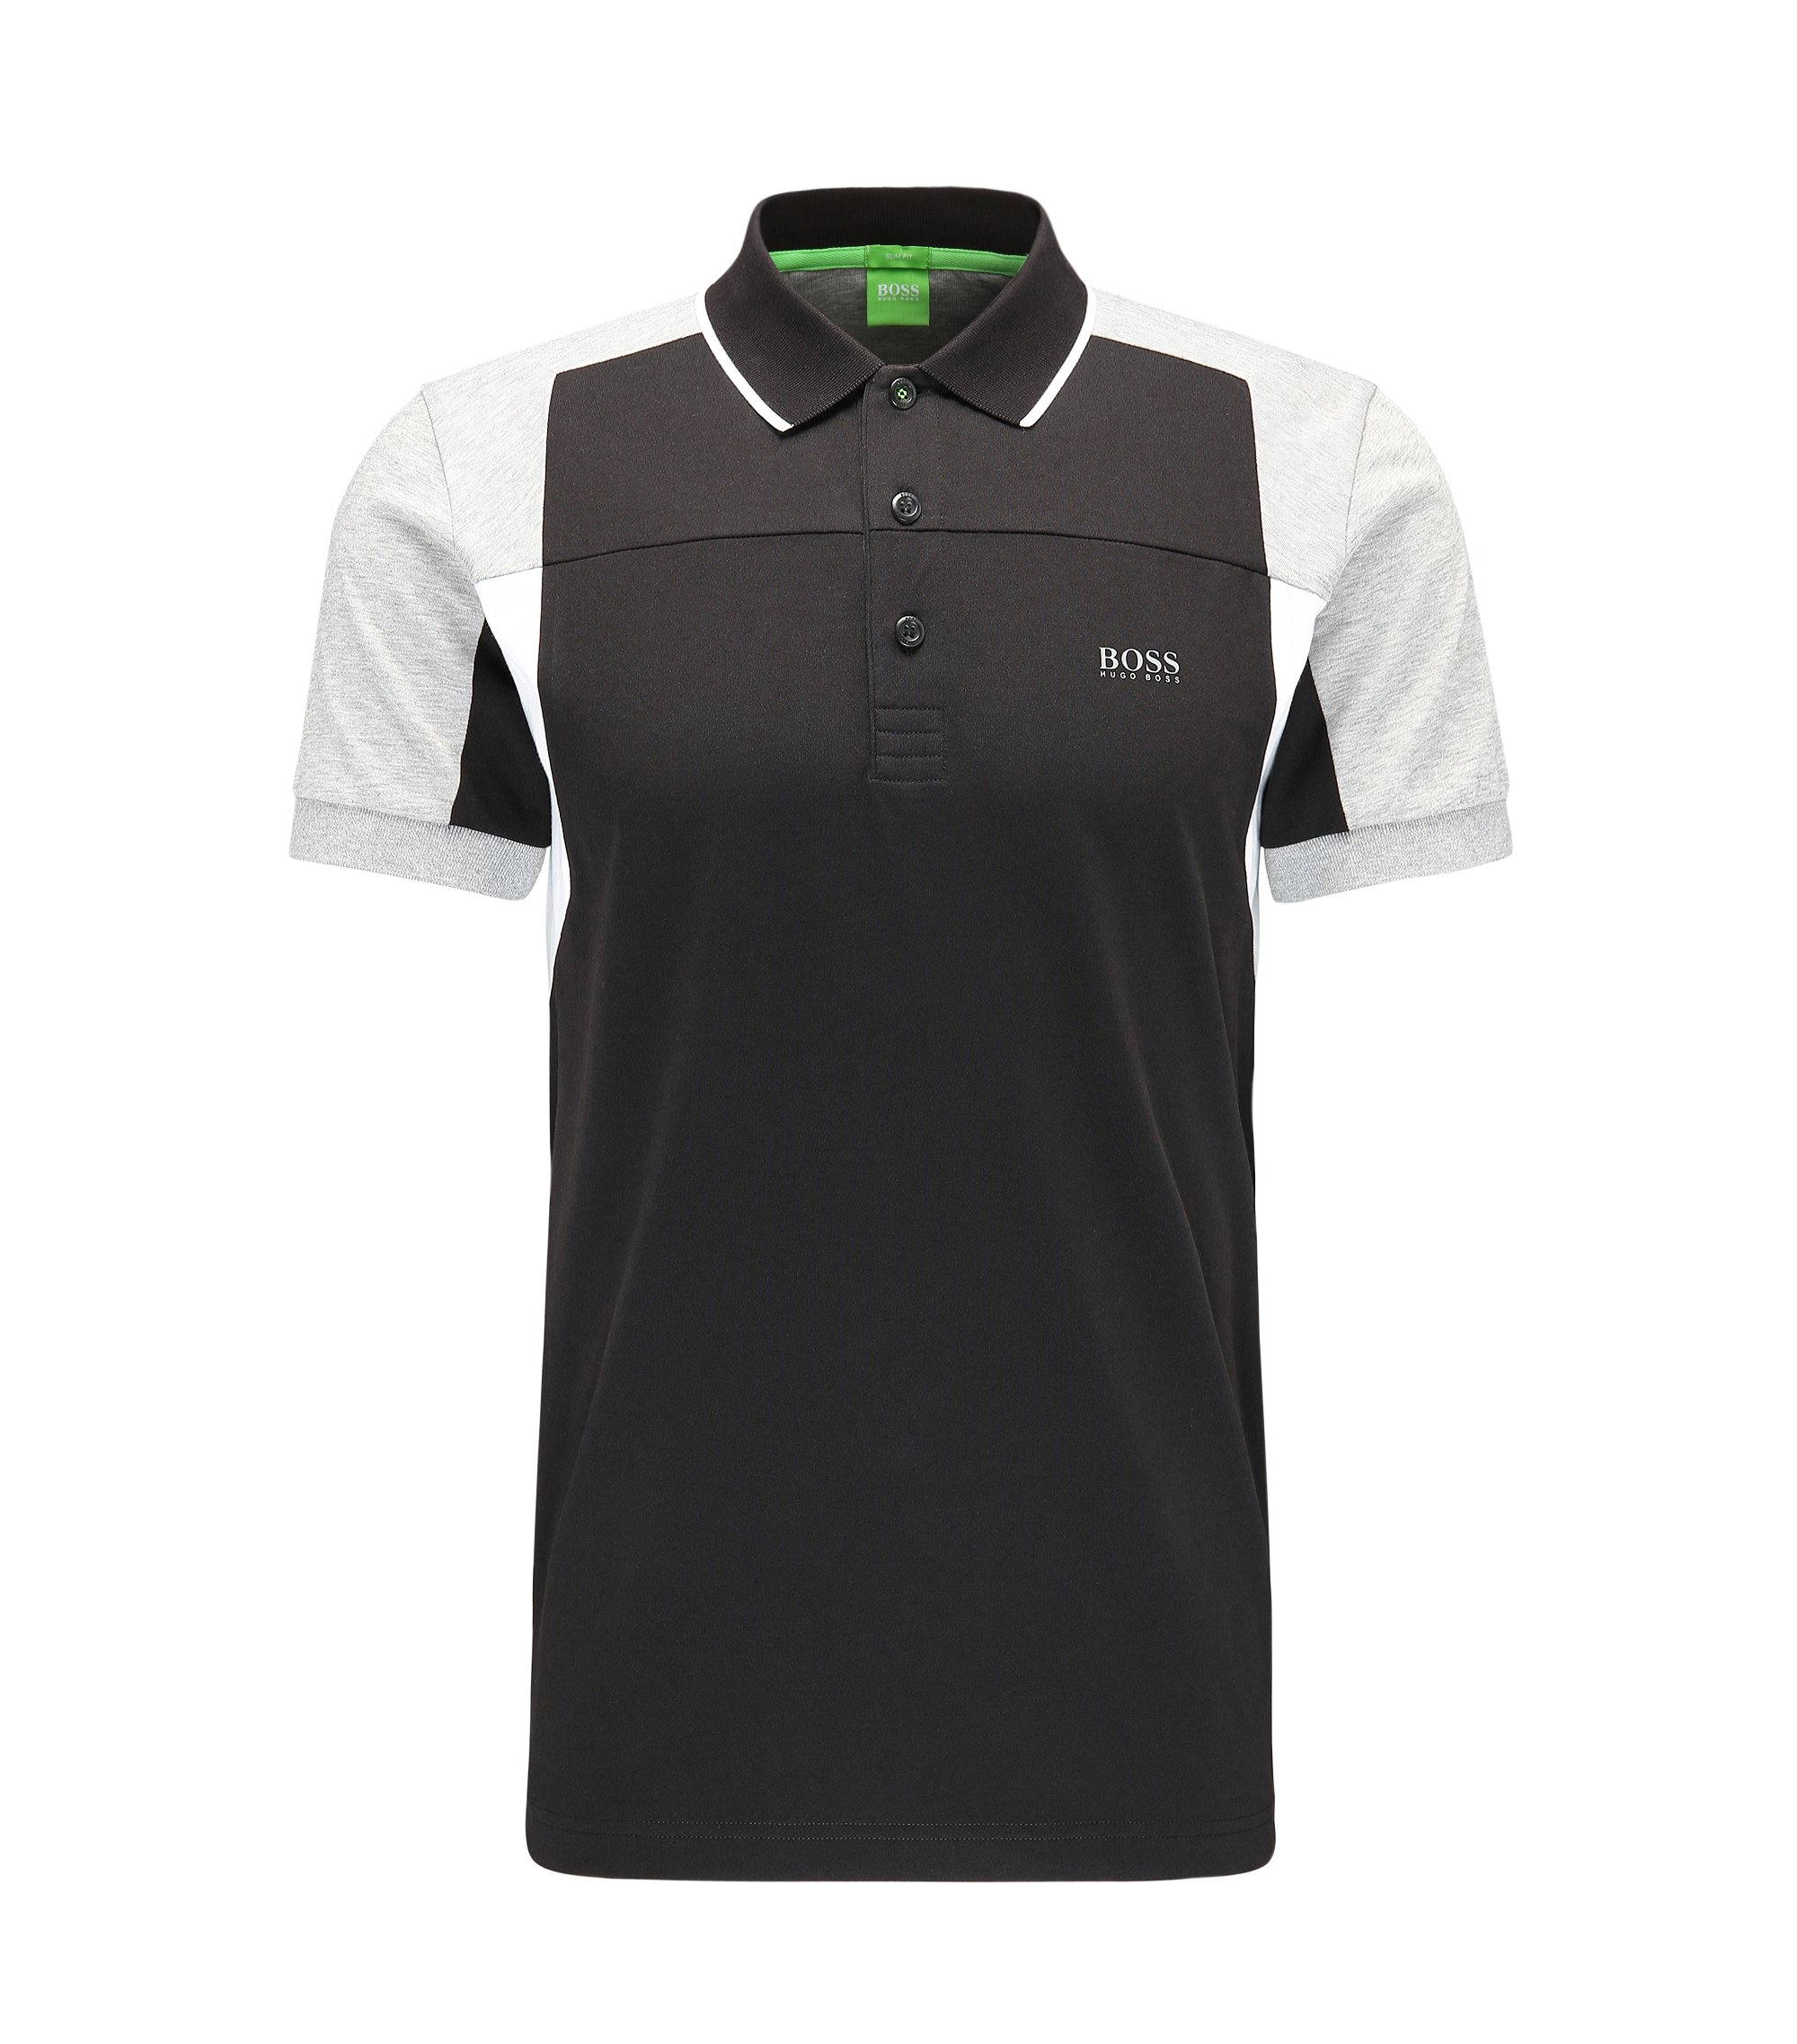 Cotton Polo Shirt, Slim Fit | Paule, Black